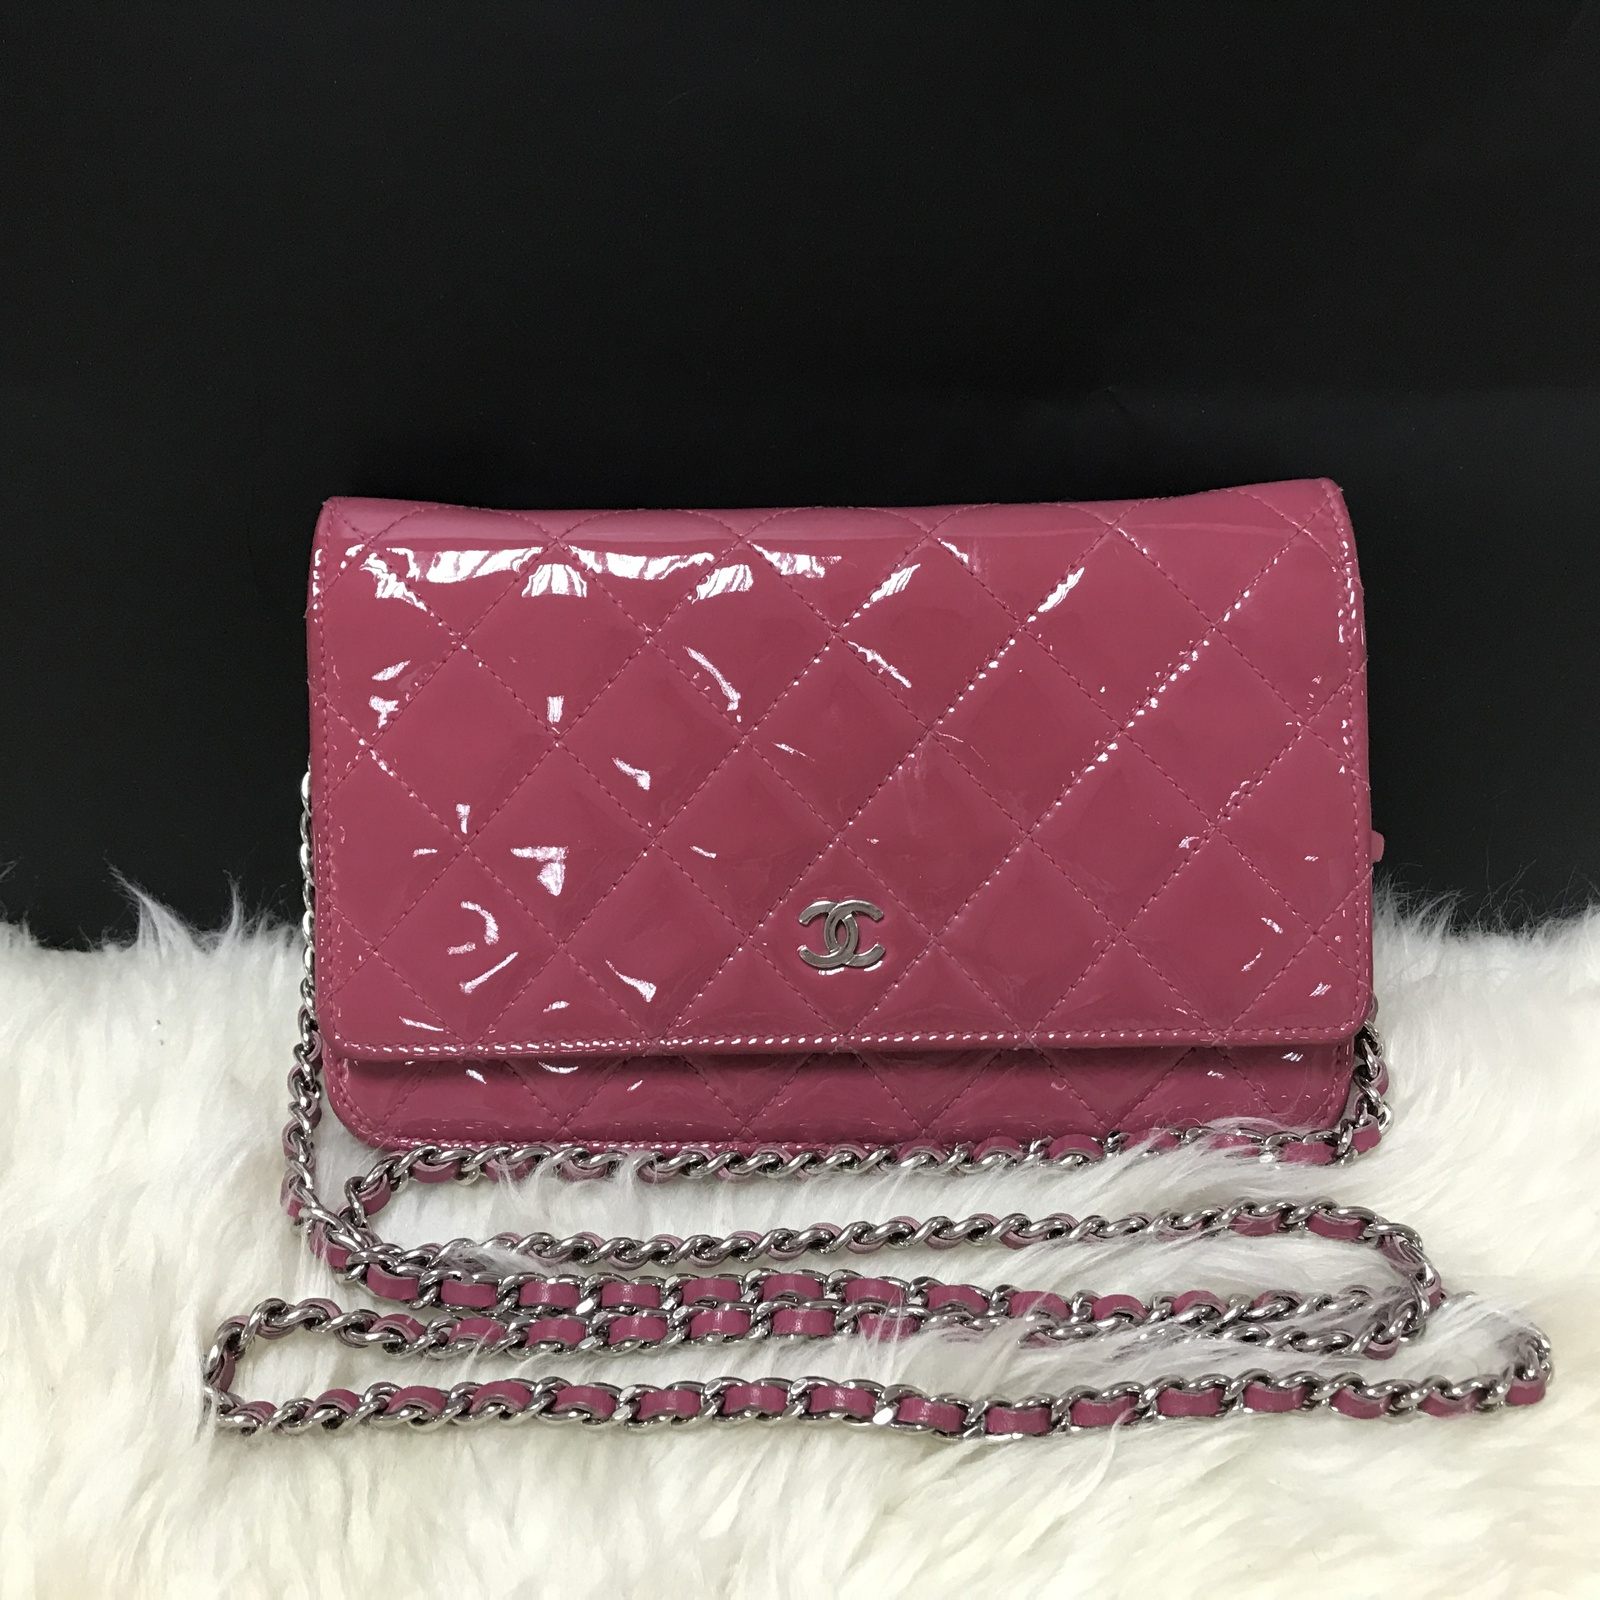 100% AUTH CHANEL Pink Quilted Patent WOC Wallet On Chain Clutch Bag SHW